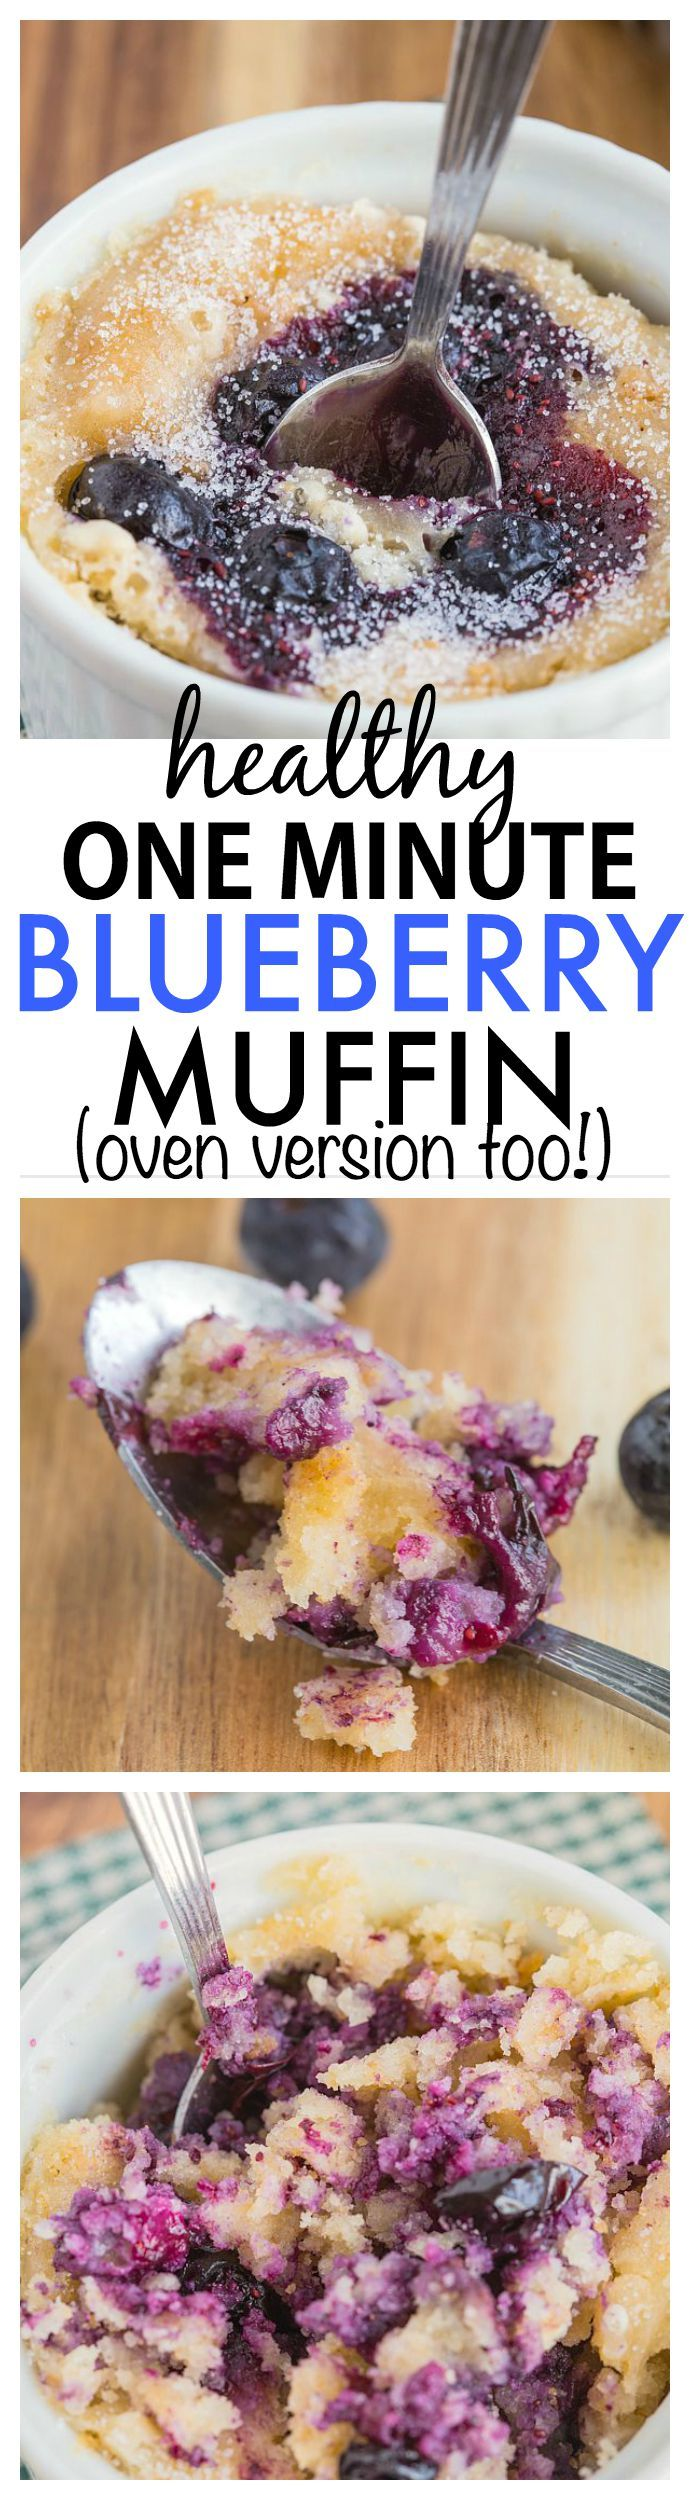 Healthy 1 Minute Blueberry Muffin Recipe- Inspired by Starbucks, you only need one minute to whip this healthy, moist, fluffy and delicious mug muffin cake- There is an oven version too! {vegan, gluten-free, paleo options}